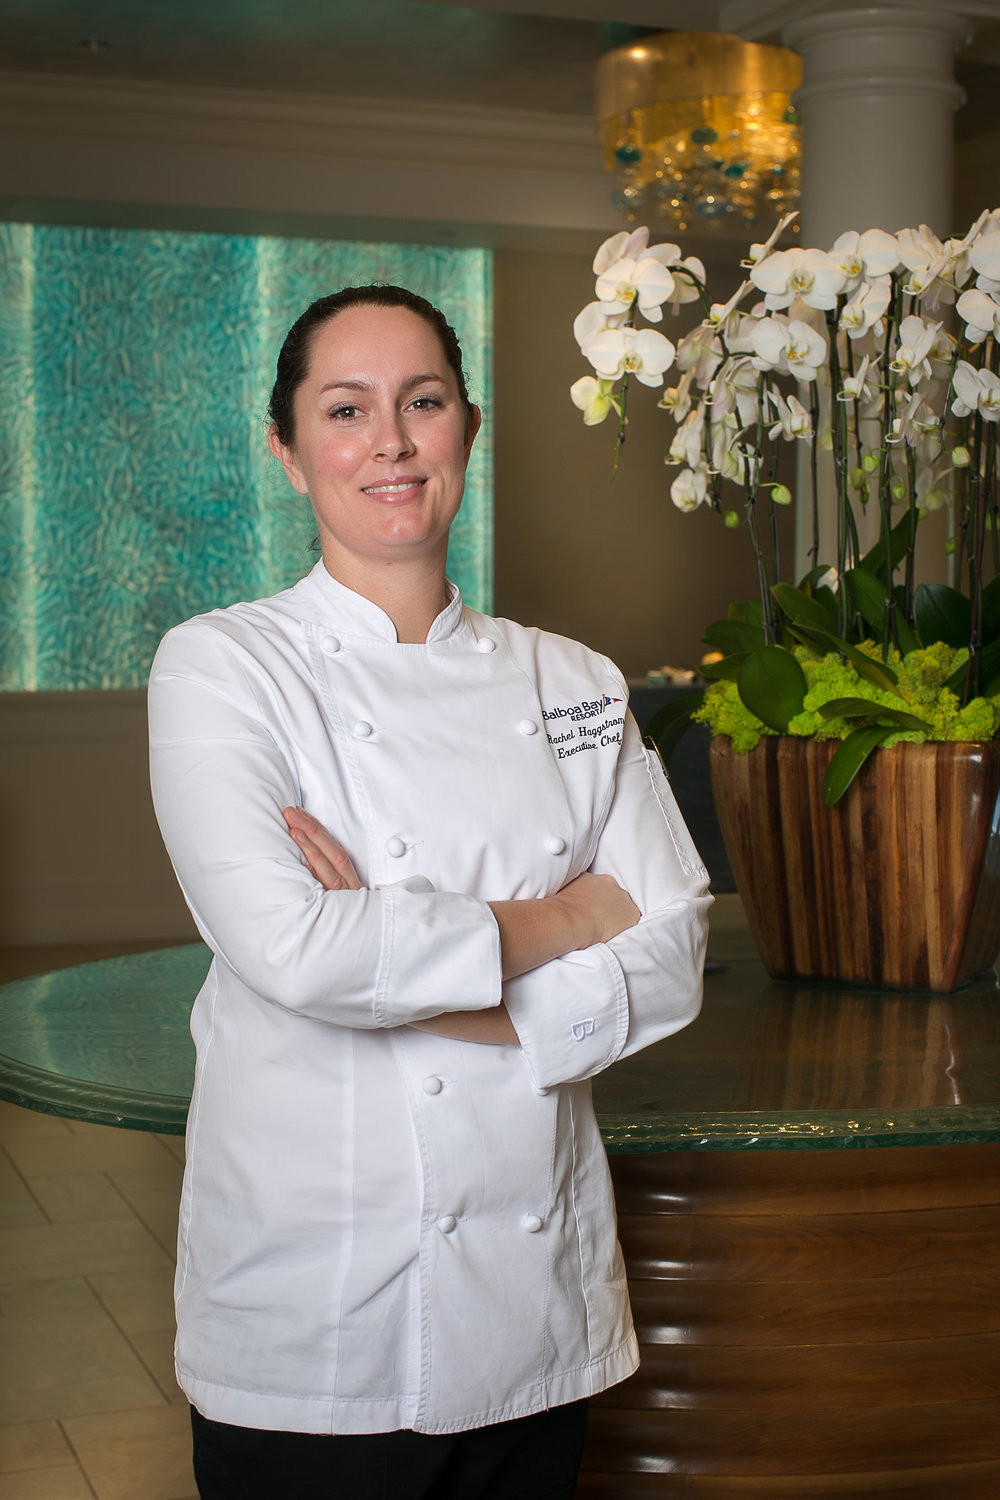 Chef Rachel Haggstrom, photo by Tony Florez